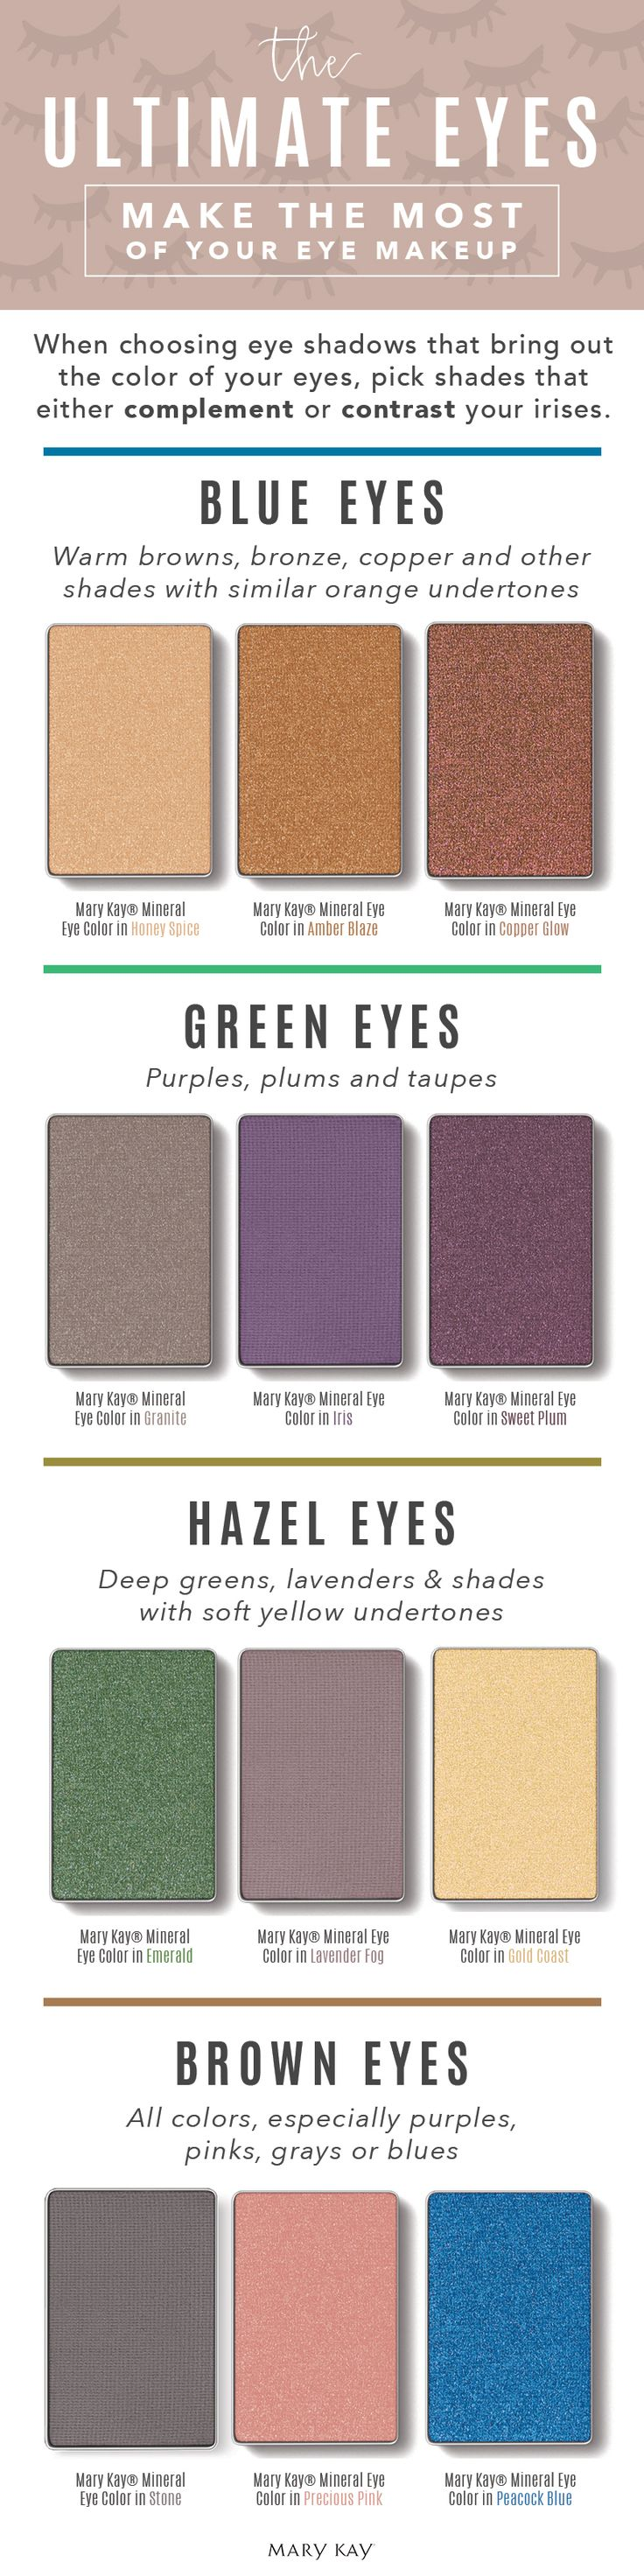 When choosing eye shadows that bring out the color of your eyes, pick shades that either complement or contrast your irises. Play up gorgeous brown, hazel, green or blue eyes with shadows that help them stand out!